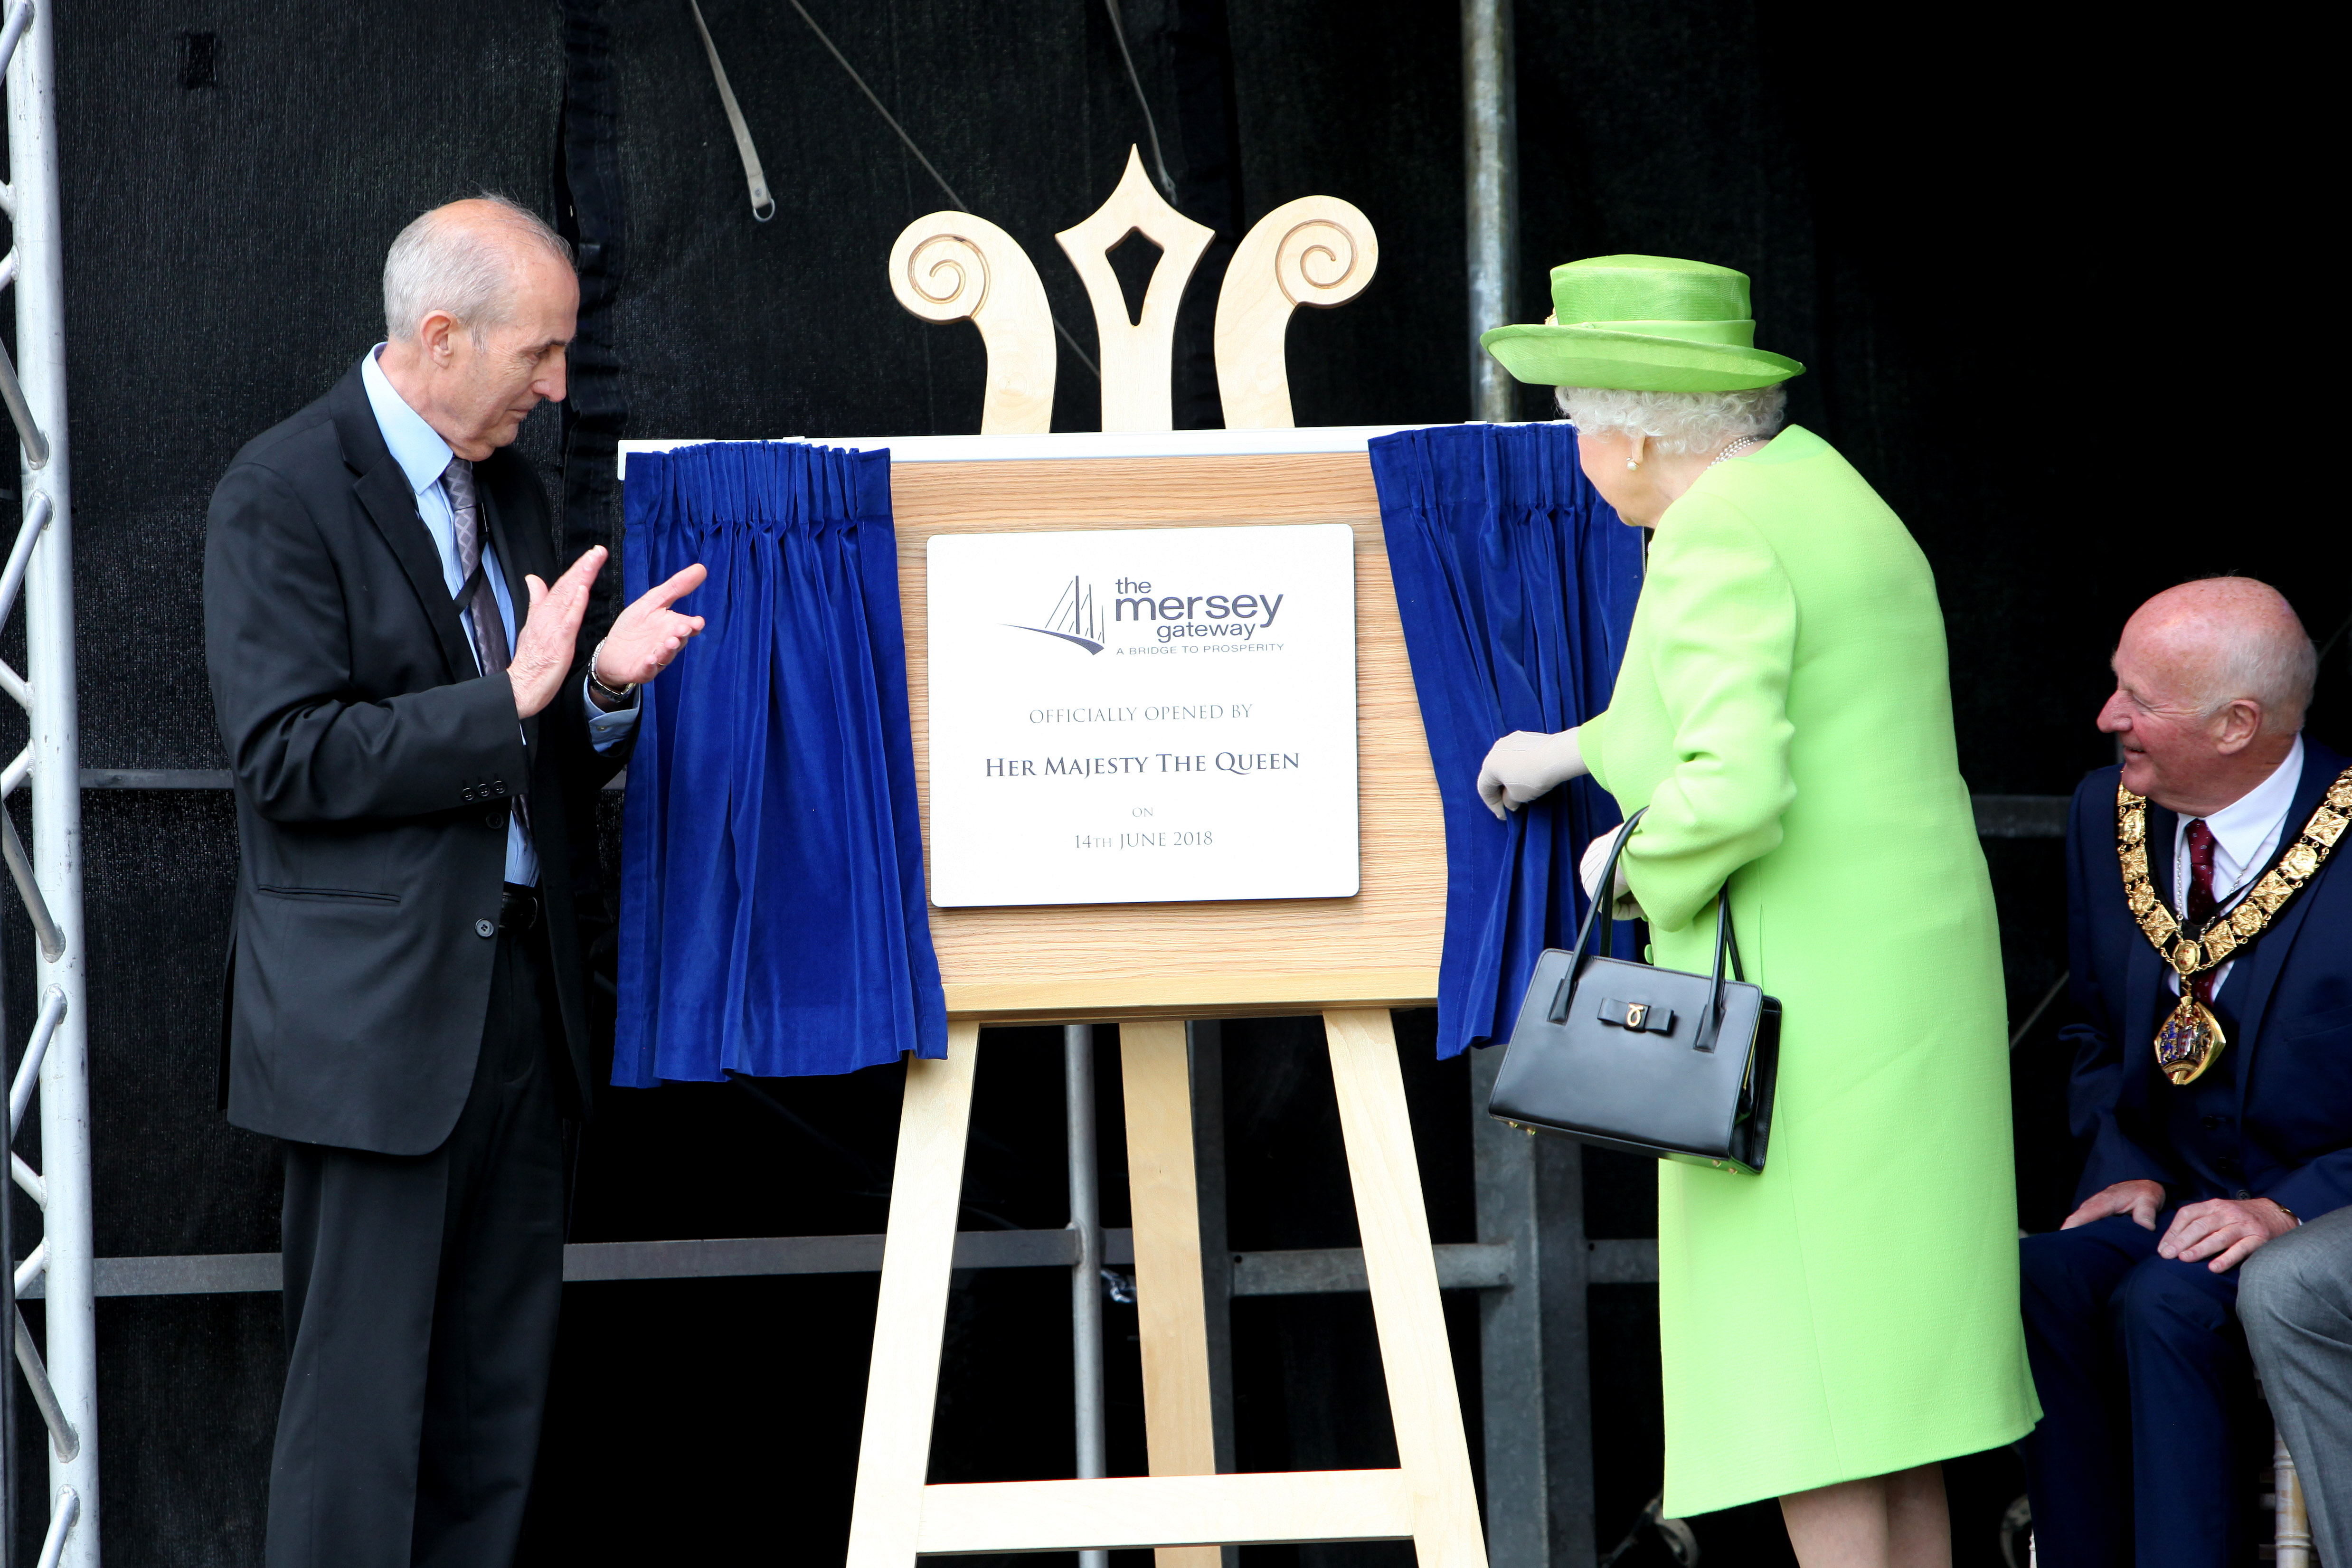 Her Majesty Elizabeth II officially inaugurates the Mersey Gateway Bridge, operated by Emovis